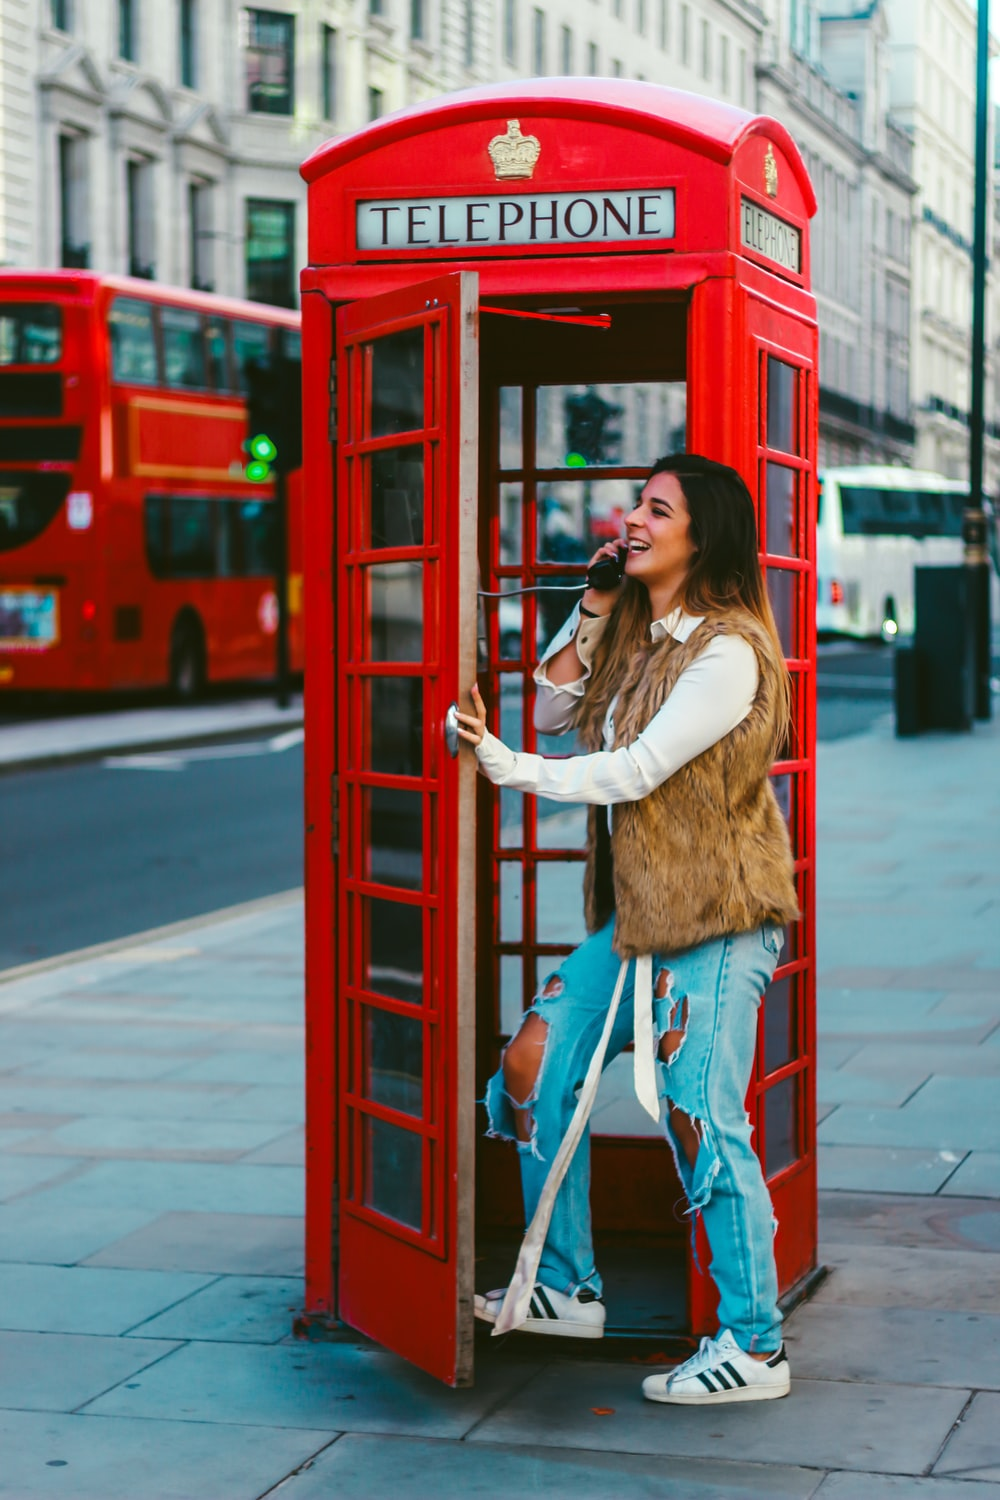 woman in brown long sleeve shirt and blue denim jeans leaning on red telephone booth